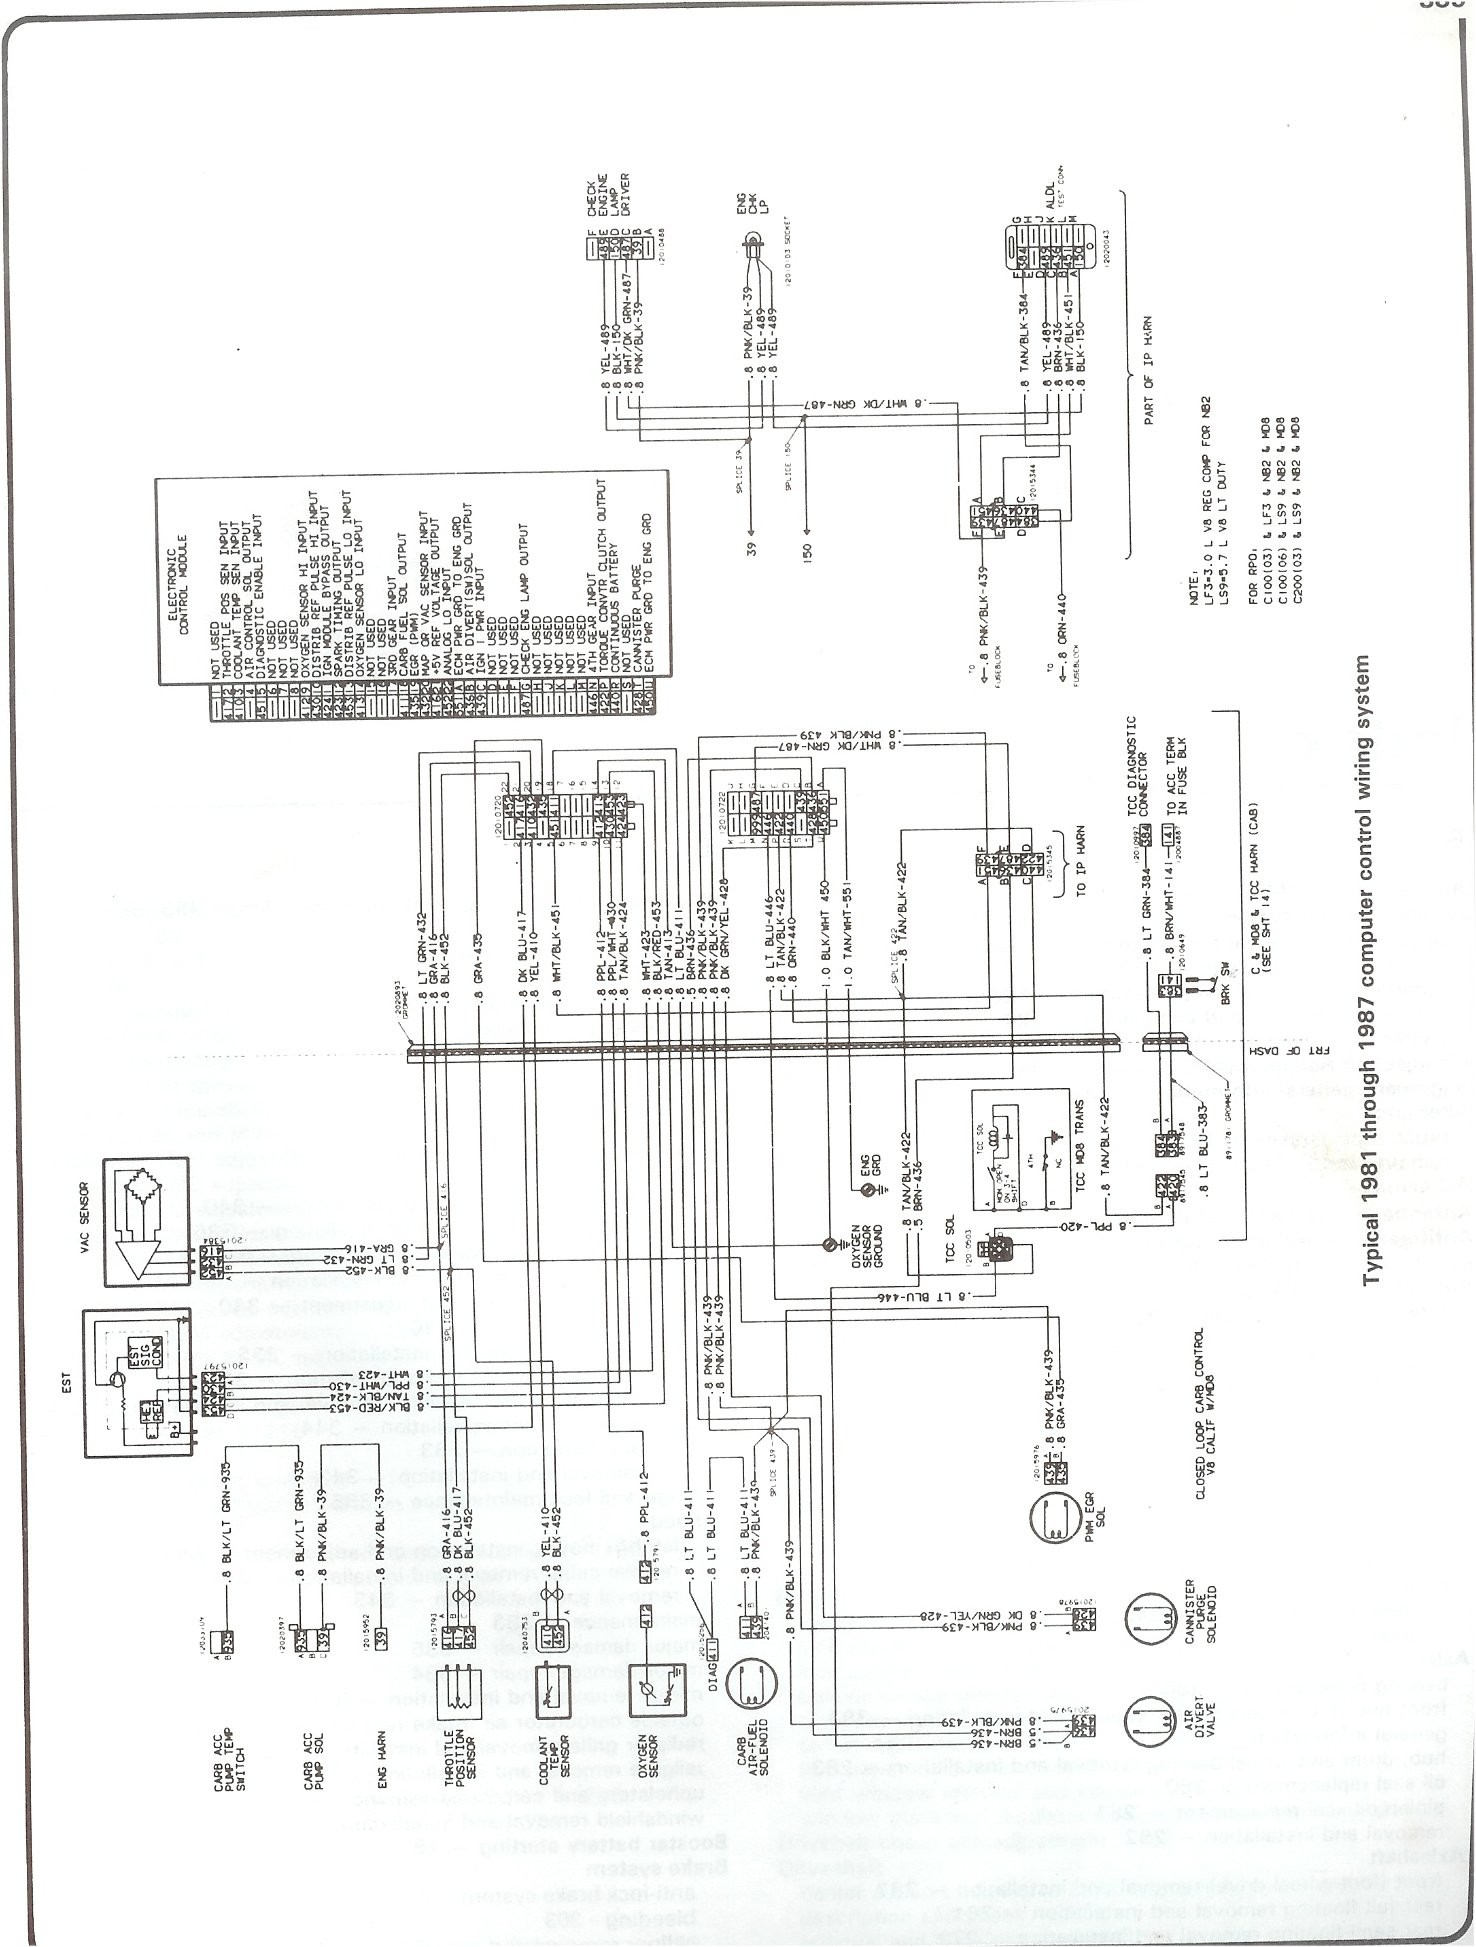 1986 Chevy K10 Wiring Diagram Of Truck Worksheet And 1997 Camaro 86 Fuse Box Trusted Diagrams U2022 Rh 66 42 81 37 1500 1979